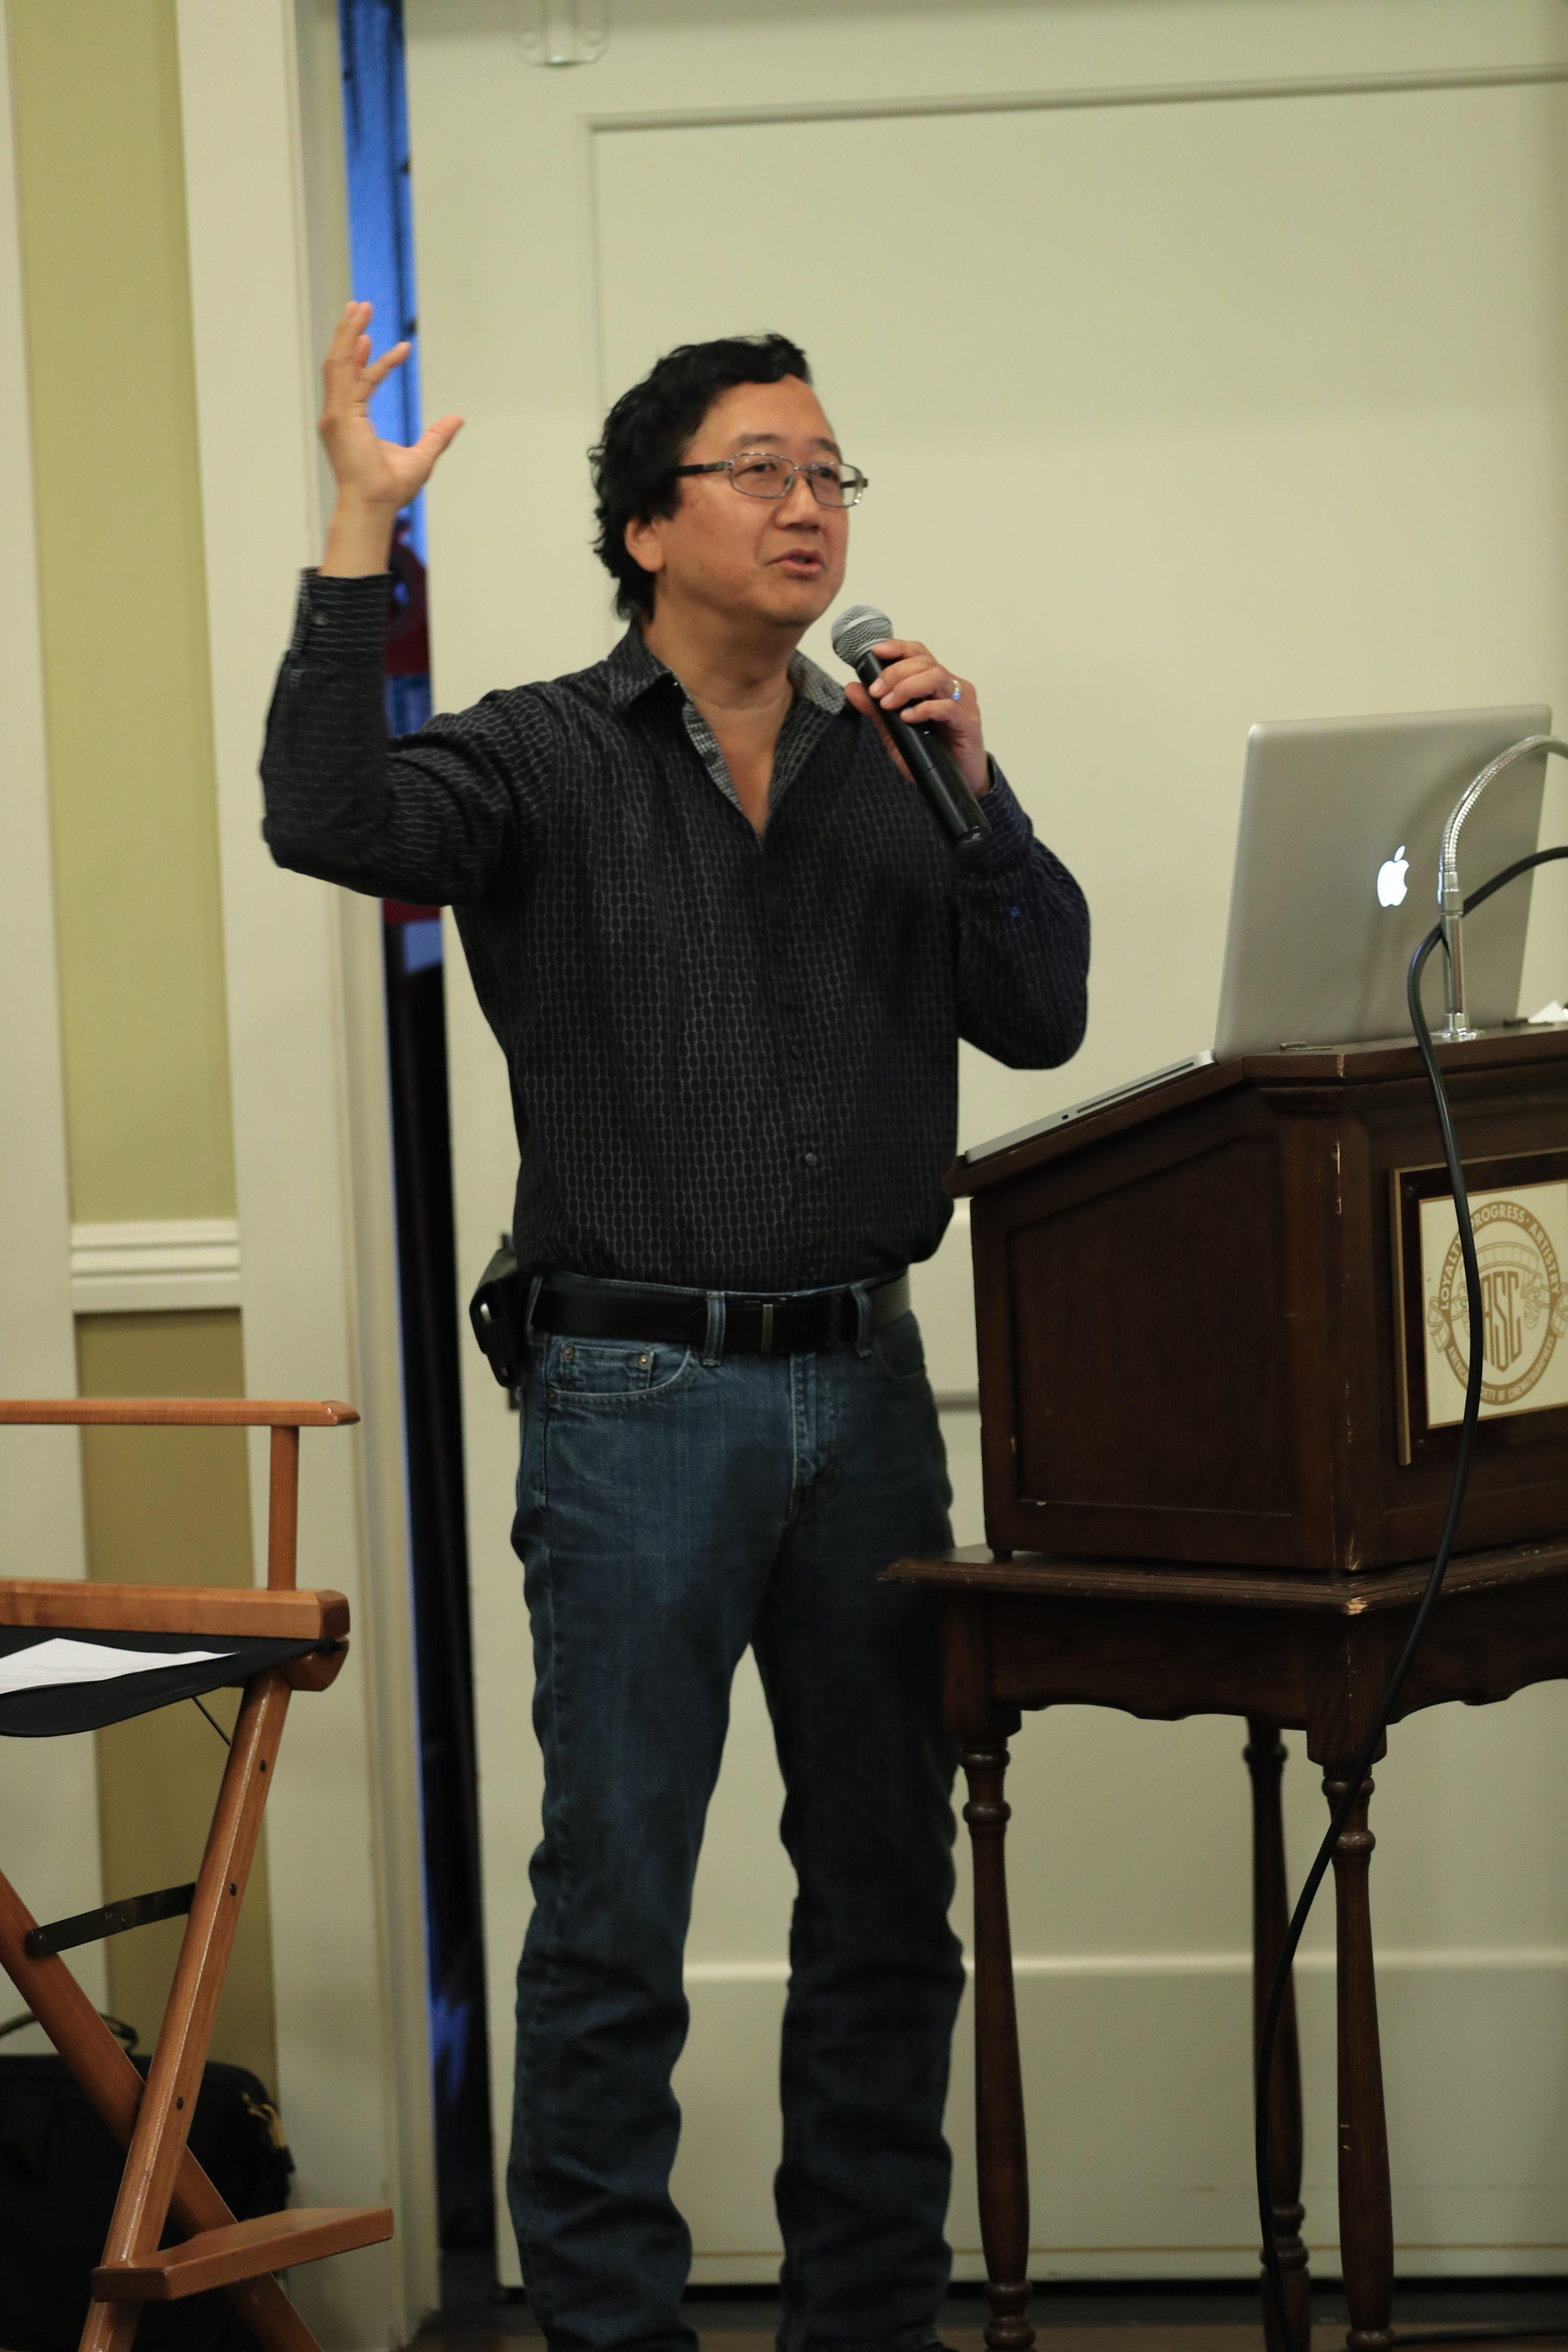 Michael Goi, ASC discussing his work on American Horror Story at ICS2016. Photo by James Neihouse, ASC